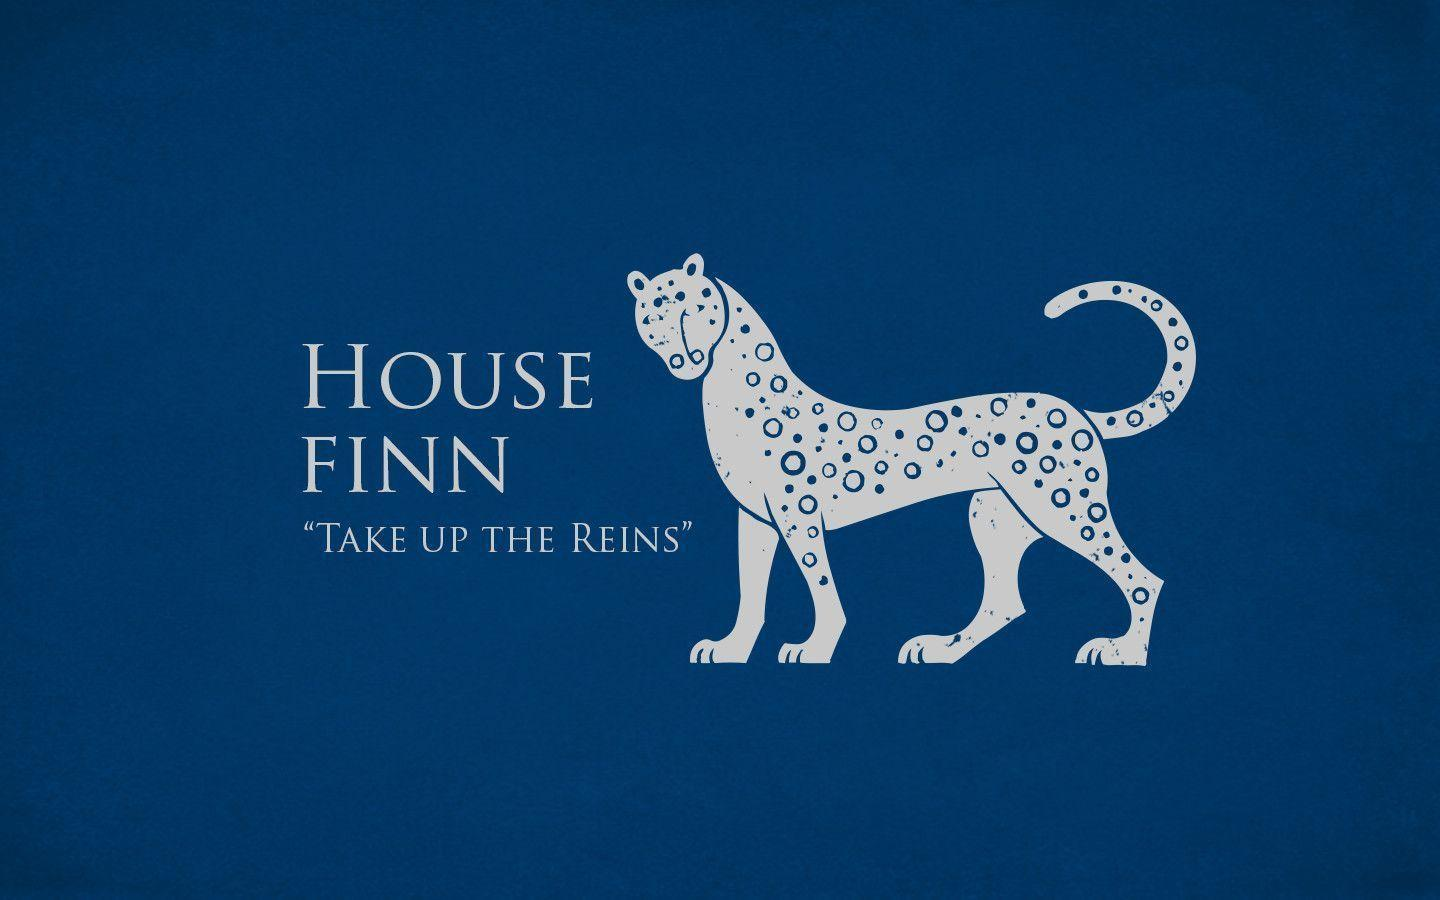 Image For > Game Of Thrones House Mottos Wallpapers